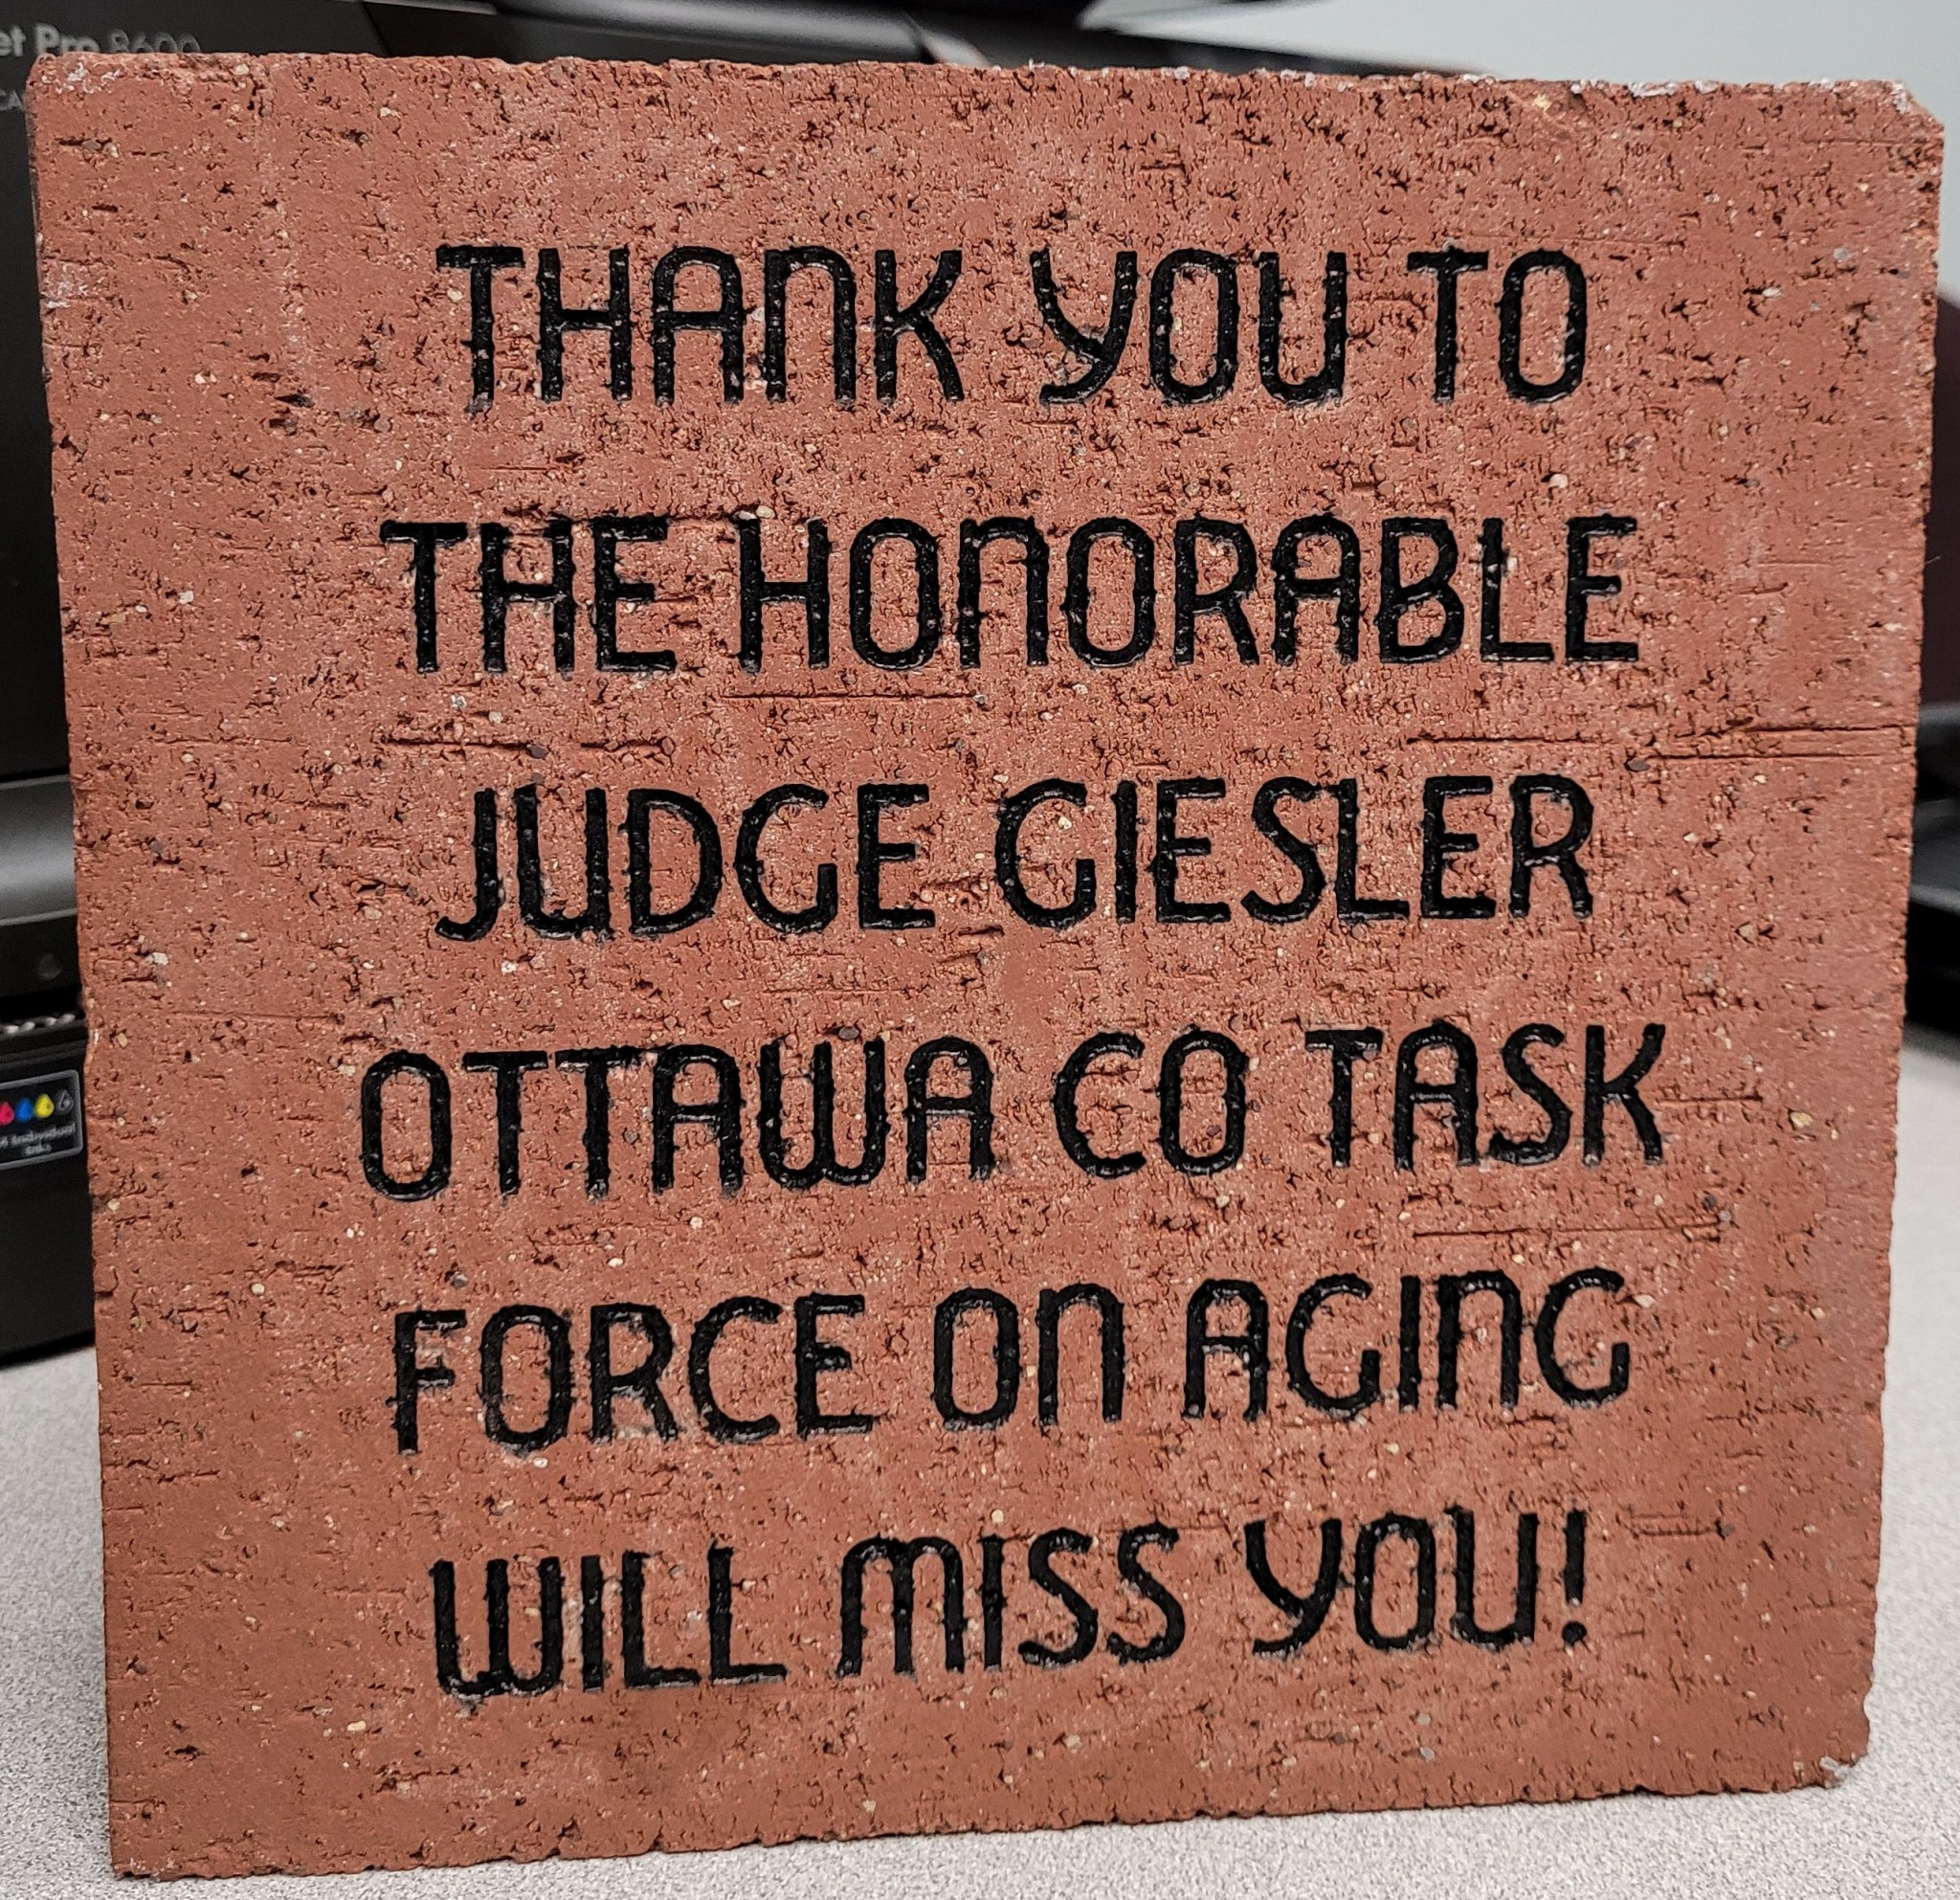 "Ottawa County Task Force on Aging honored Ottawa County Juvenile/Probate Judge Kathleen Giesler for her leadership in developing the organization by presenting her with a paver, to be set at the county fairgrounds. The paver says, ""We will miss you!"" since Judge Giesler is retiring Feb 8. (Submitted photo)"